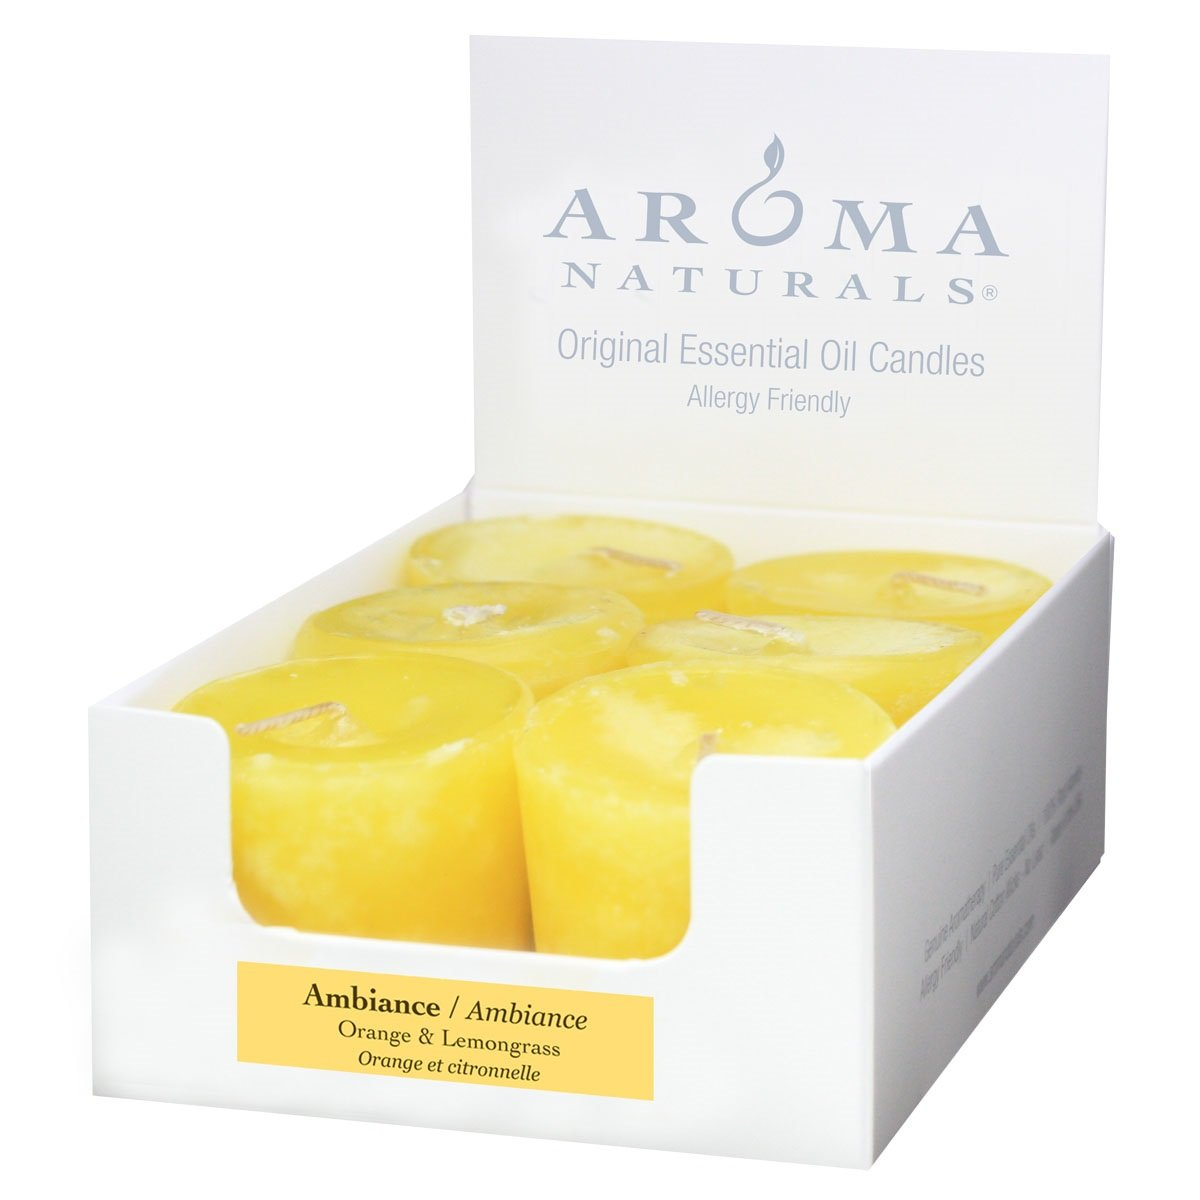 Aroma Naturals Ambiance Votive Candle, Yellow/Orange/Lemongrass, 6 Count by Aroma Naturals (Image #1)